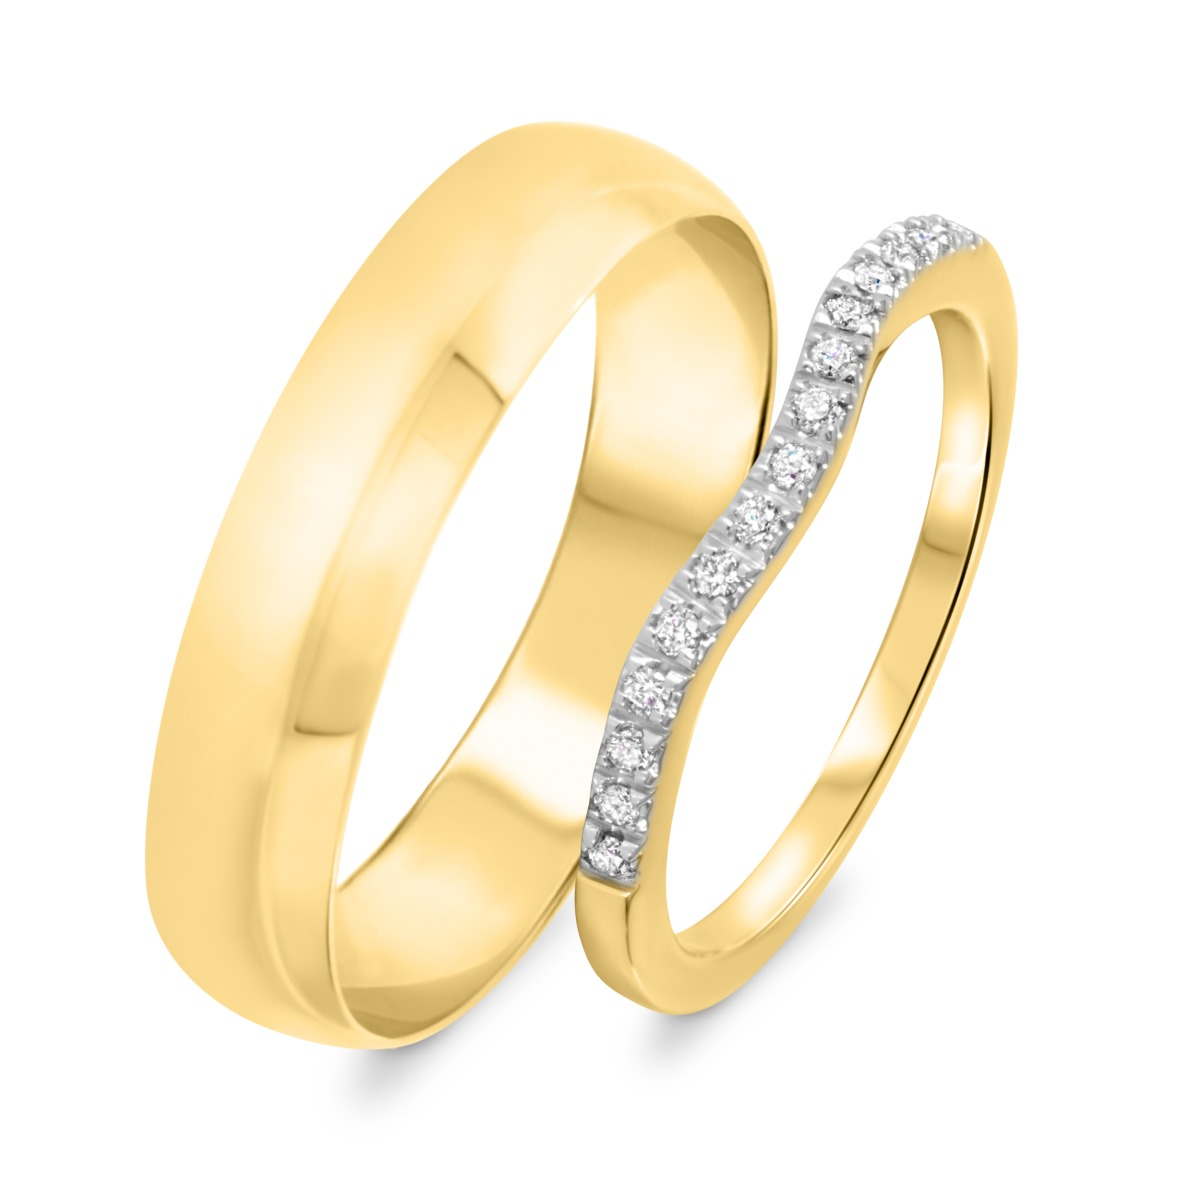 1/8 Carat T.W. Round Cut Diamond His And Hers Wedding Band Set 14K Yellow Gold